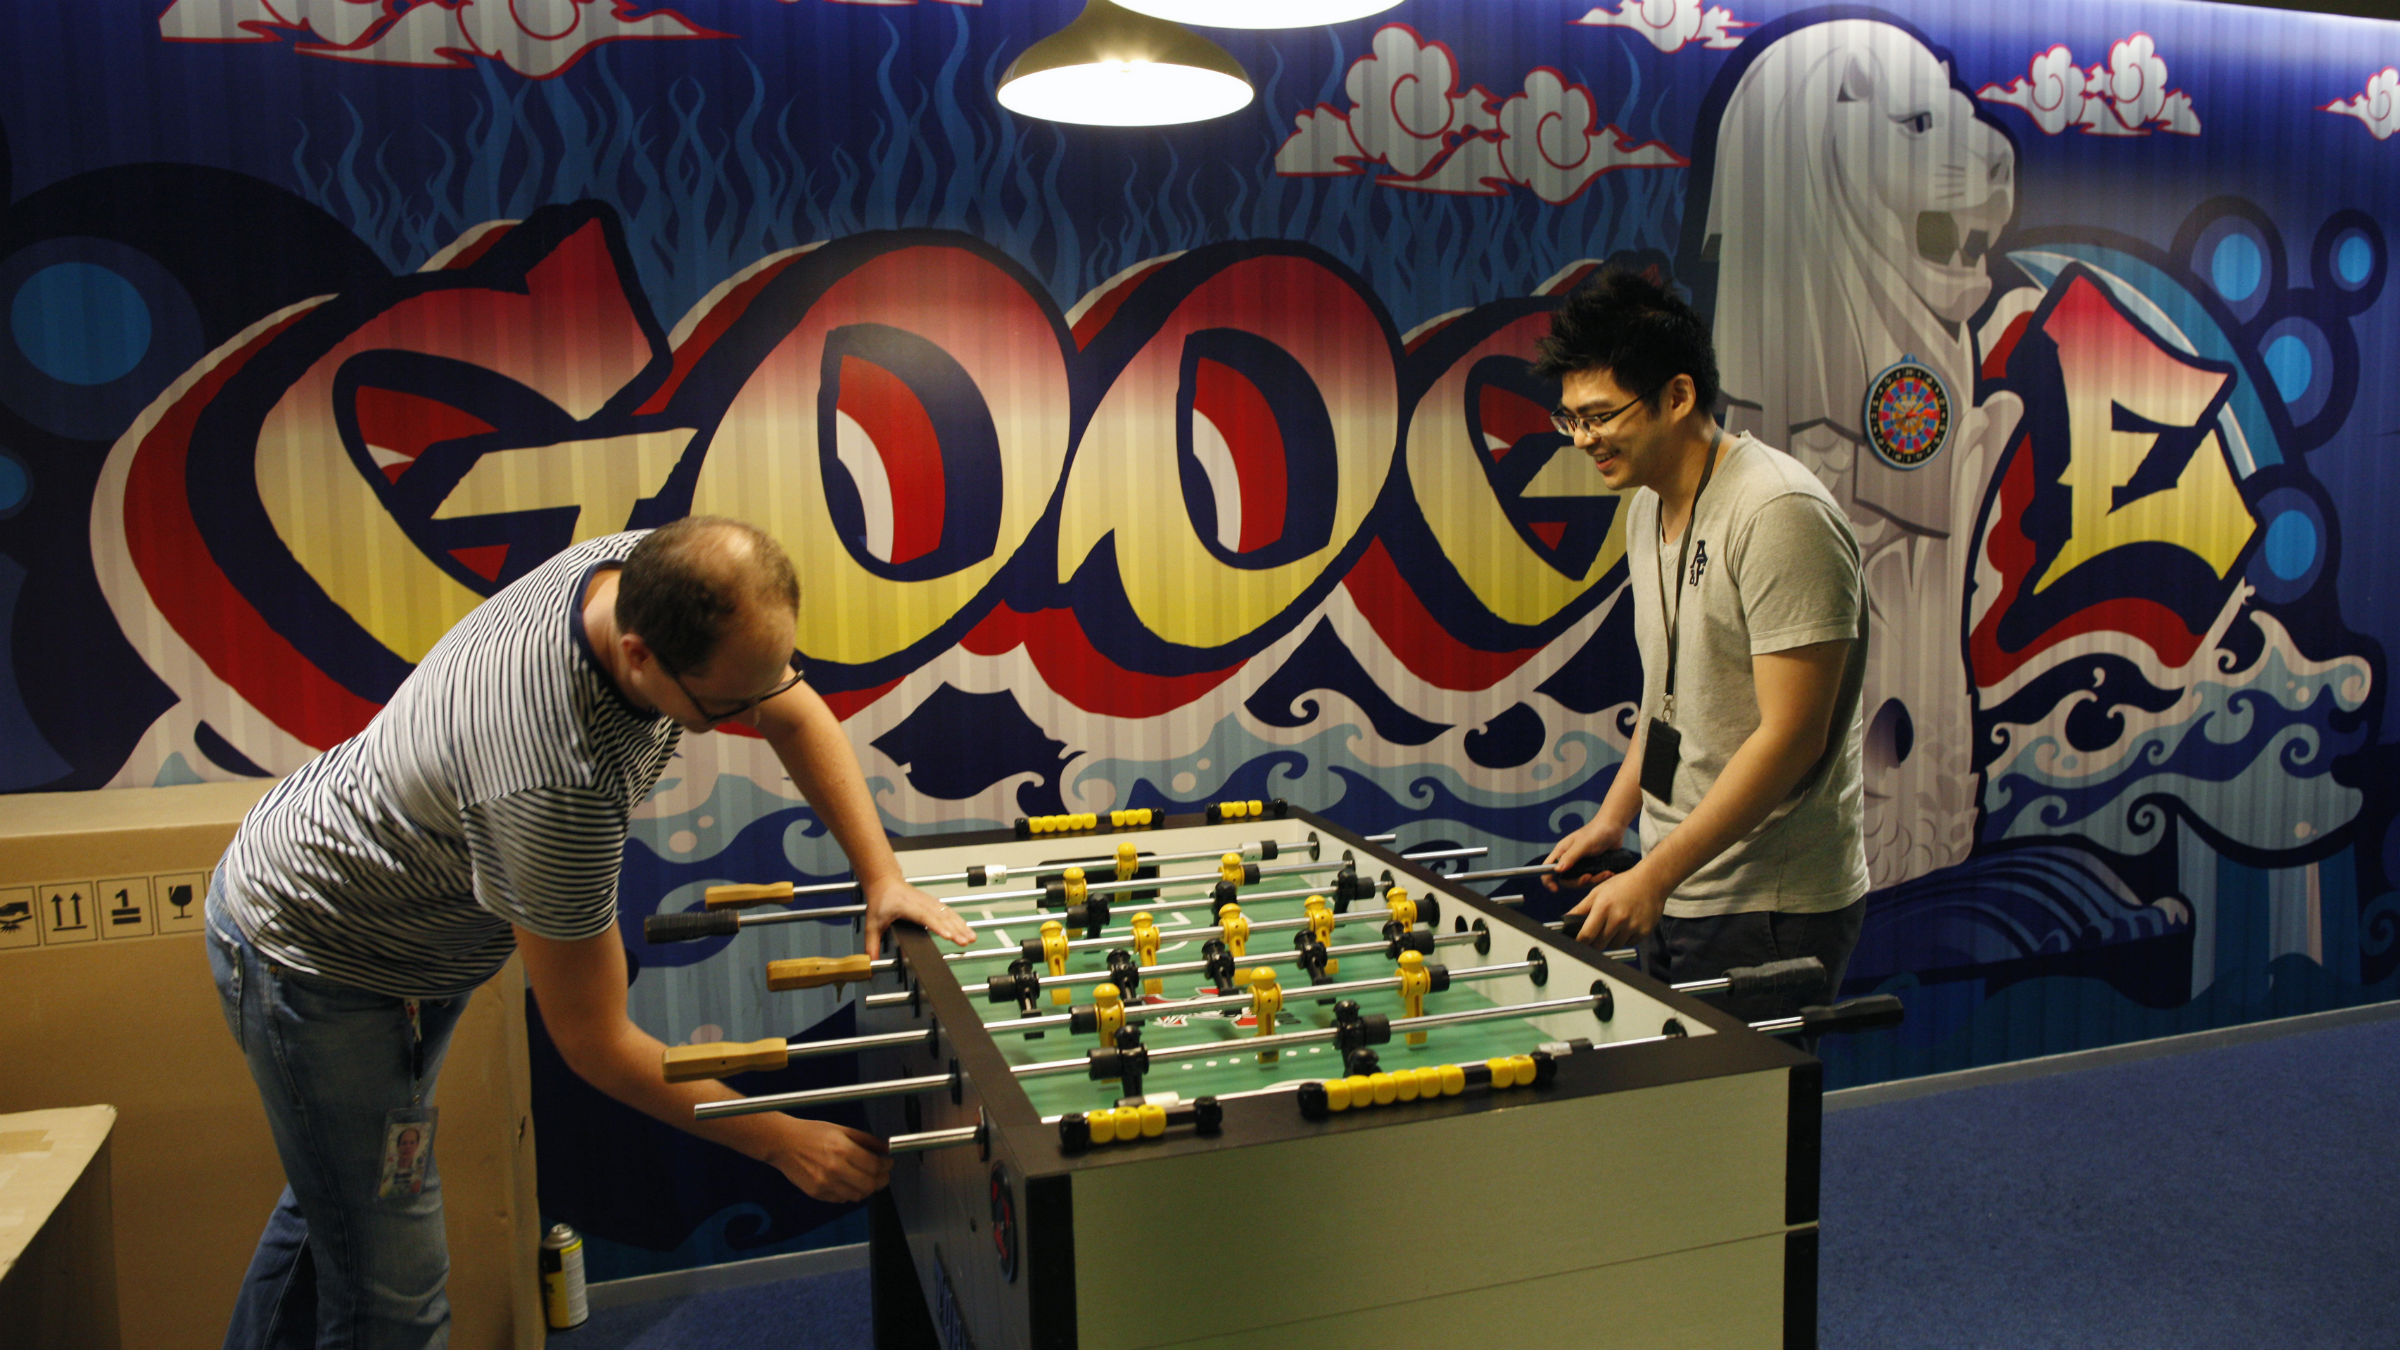 """Google's communications manager Robin Moroney (L) plays table soccer with a Google employee at a recreational area of their Singapore office July 8, 2013. Singapore's move to tighten regulation of news web sites, already under fire from bloggers and human rights groups, has attracted criticism from an unexpected quarter - large internet firms with a big presence in the city-state who say the new rules will hurt the industry. Web giants Facebook Inc, eBay Inc, Google Inc and Yahoo! Inc have said the revised rules """"have negatively impacted Singapore's global image as an open and business-friendly country""""."""